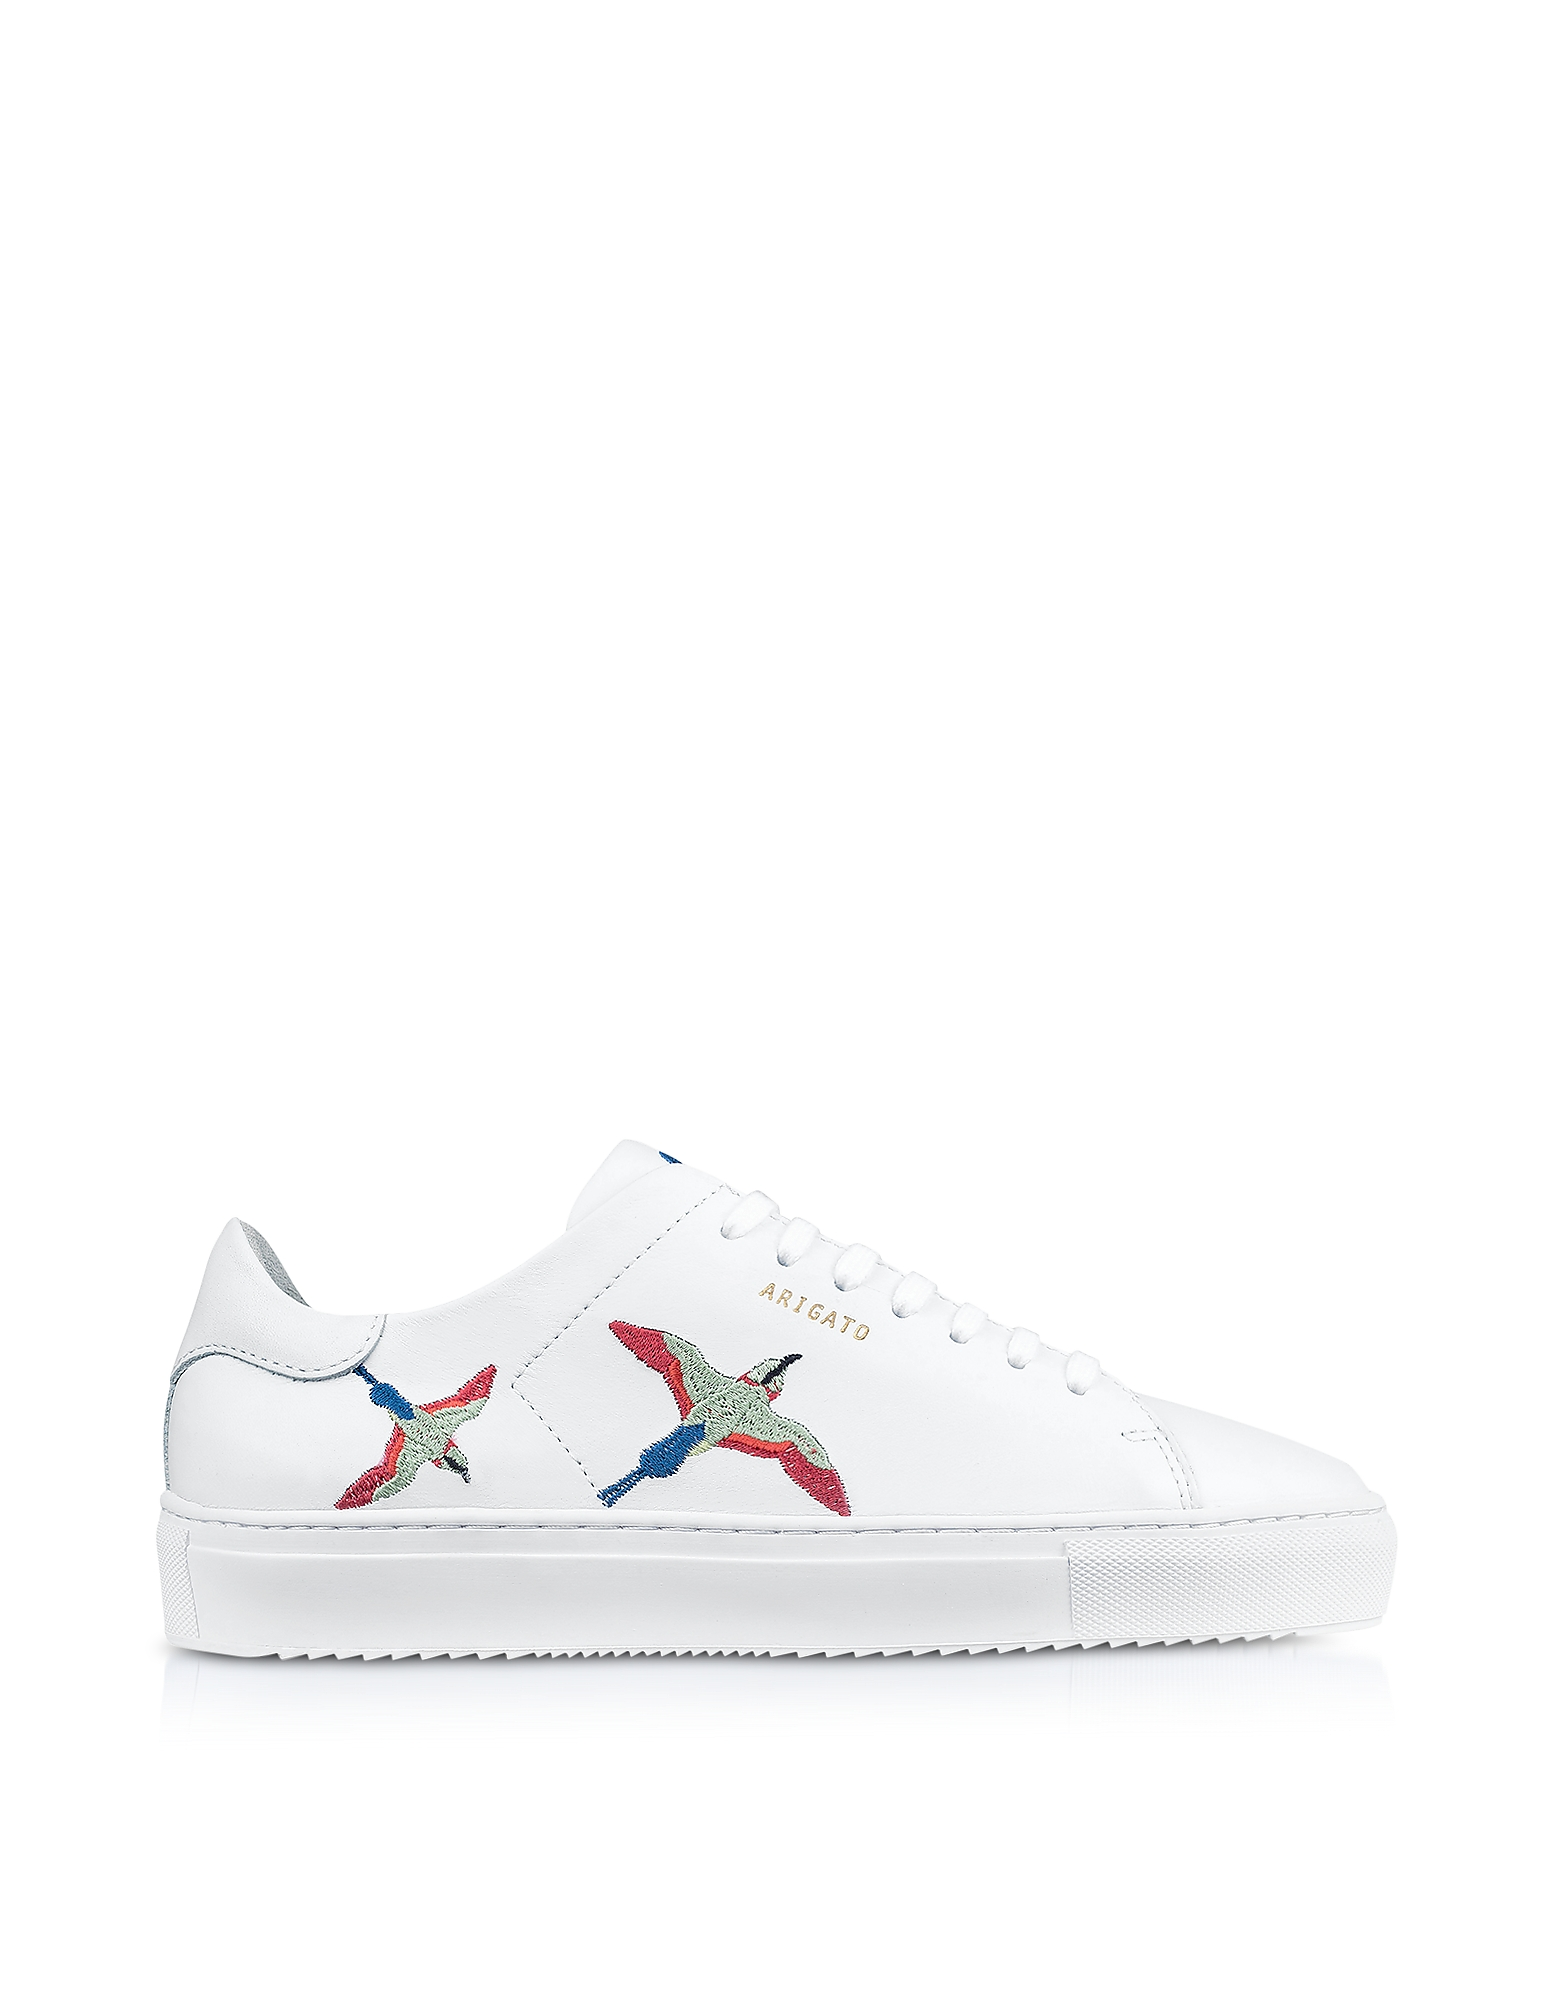 Clean 90 Bird White Leather Women's Sneakers